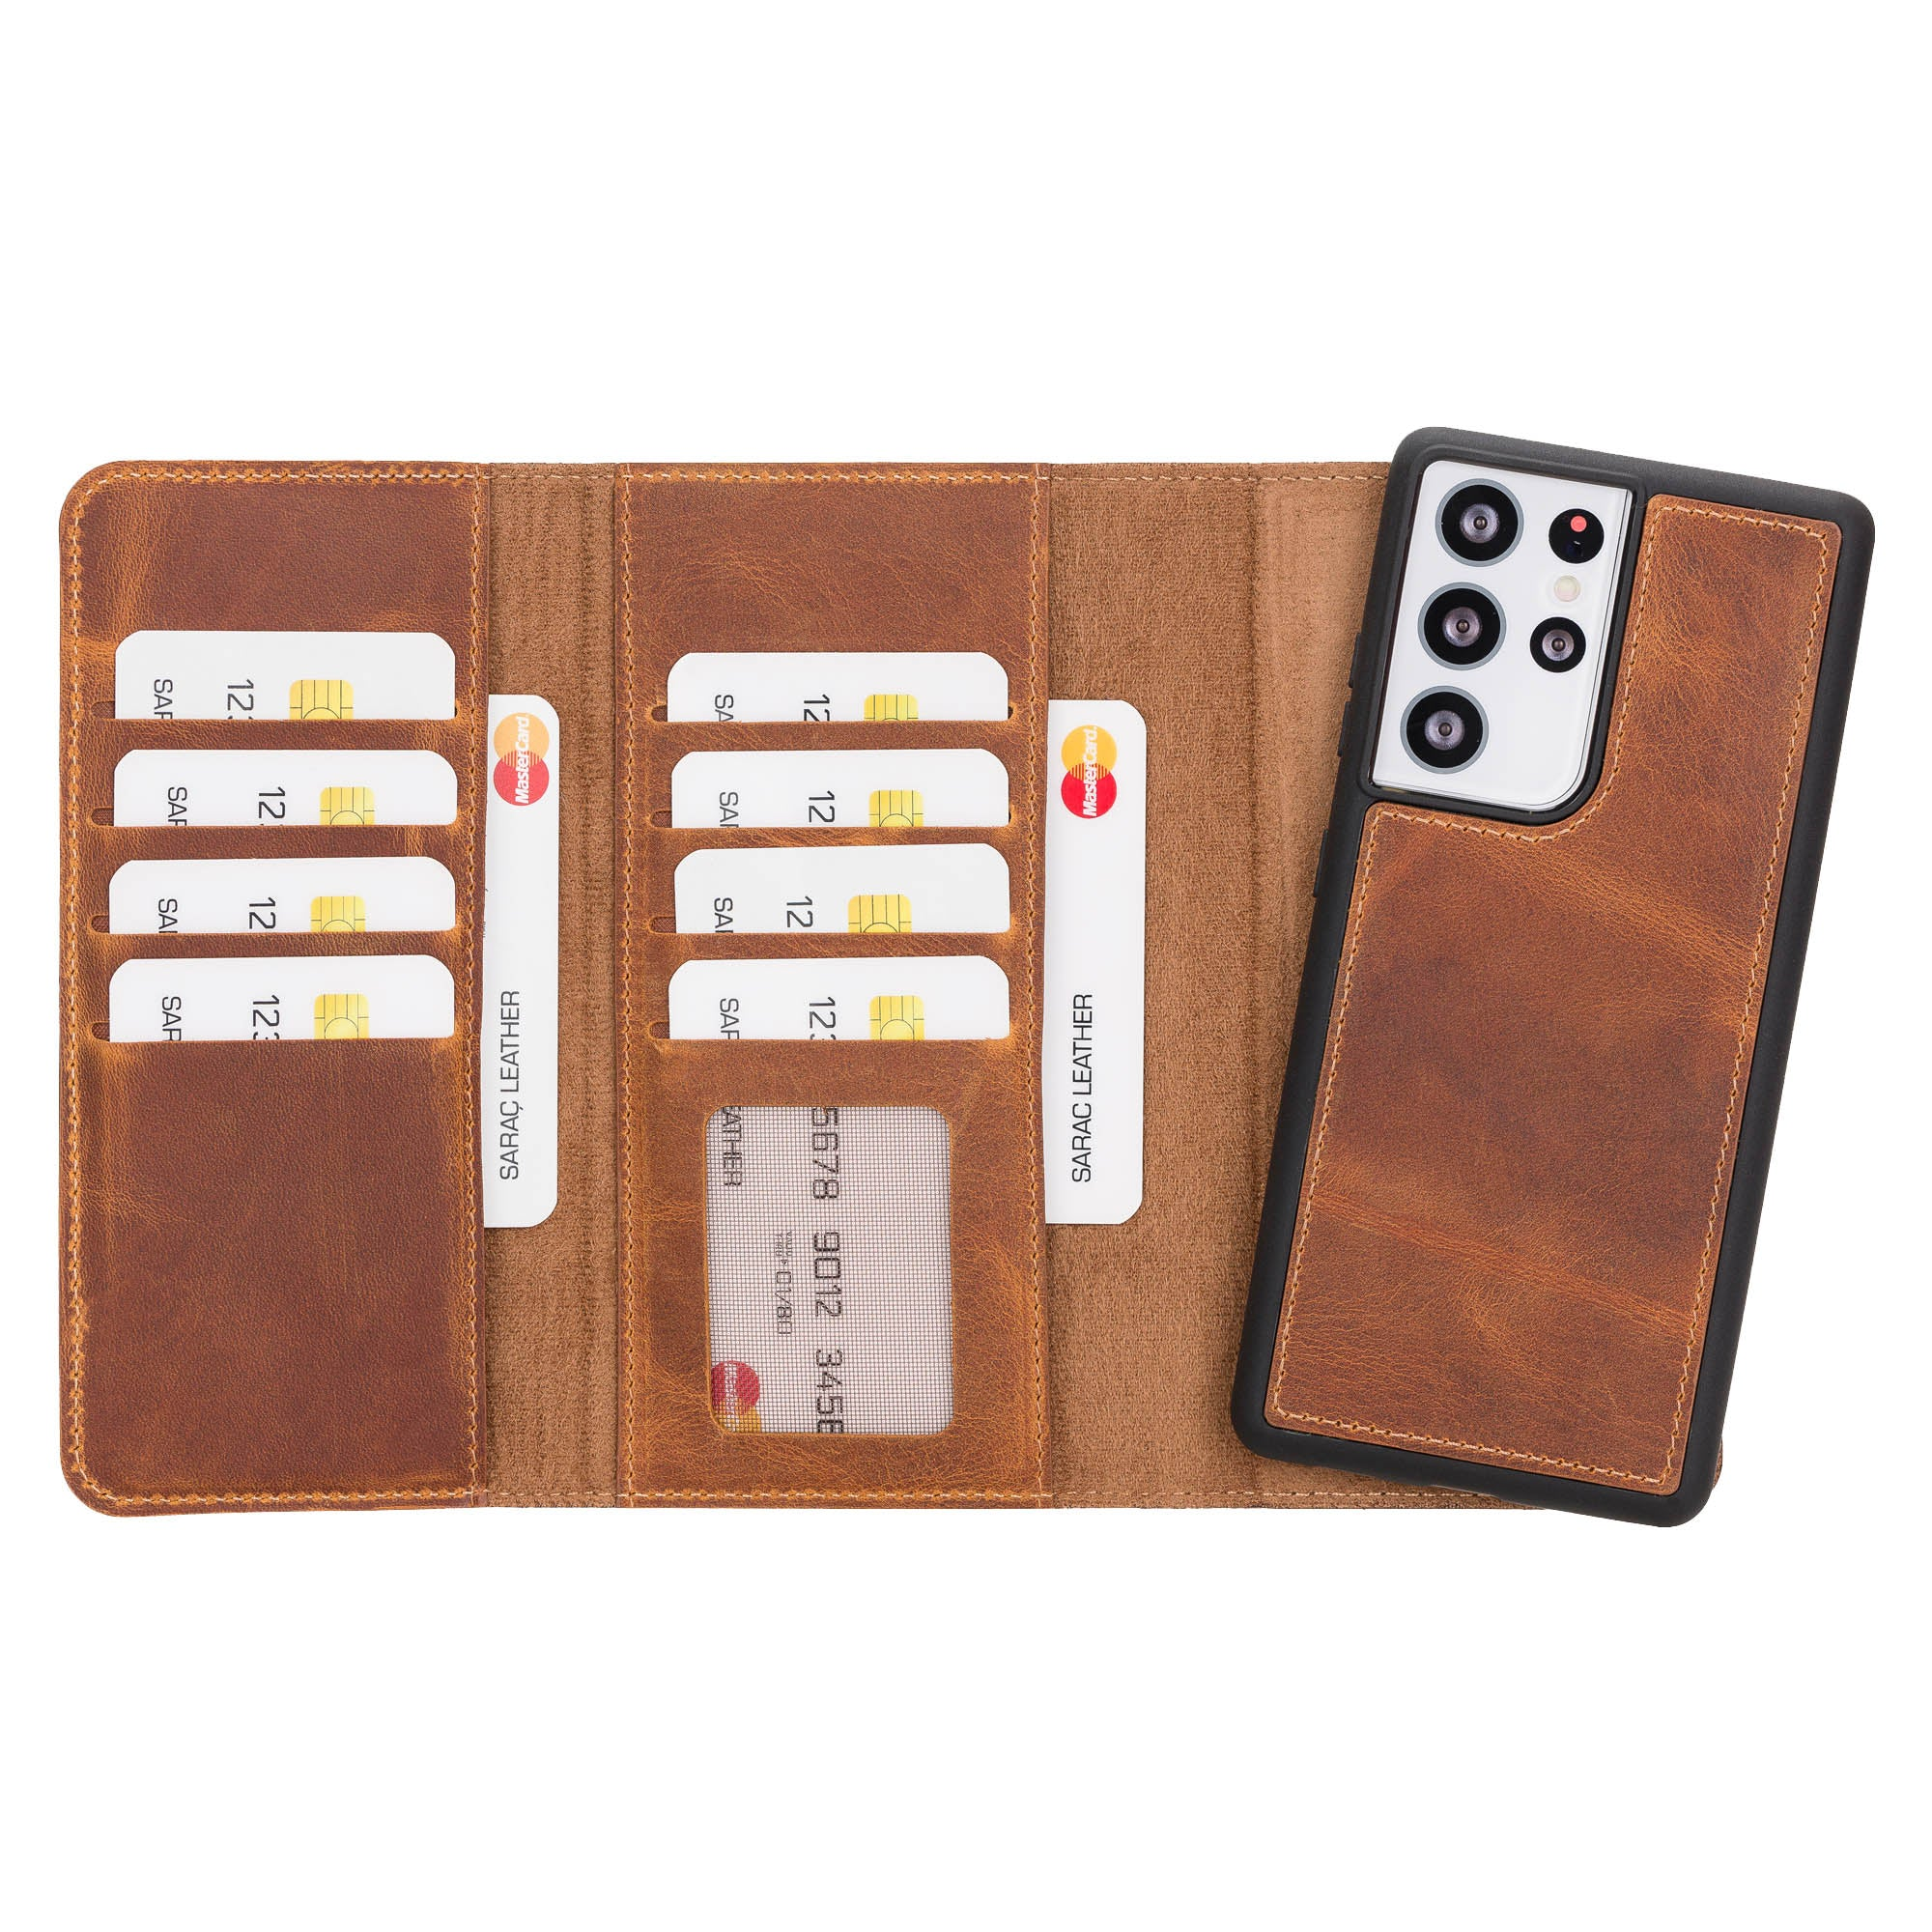 "Santa Magnetic Detachable Leather Wallet Case for Samsung Galaxy S21 Ultra 5G (6.8"") - TAN"